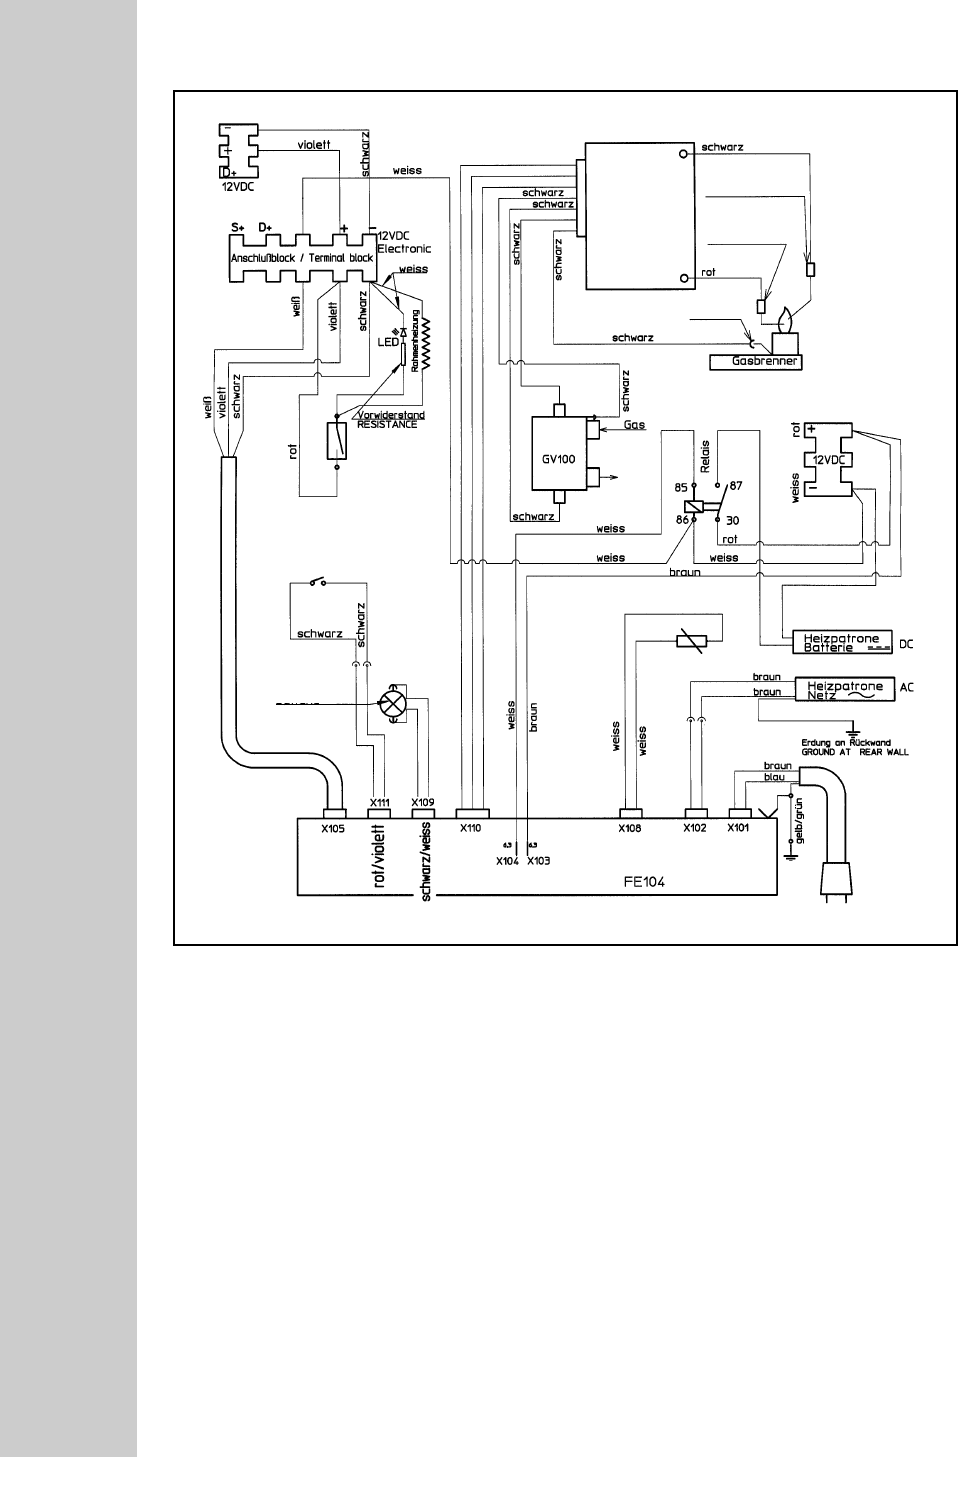 43fc0a23 351b 4018 b8ad f4061294773f bg1b page 27 of dometic refrigerator rm 7605 l user guide dometic refrigerator wiring diagram at gsmx.co